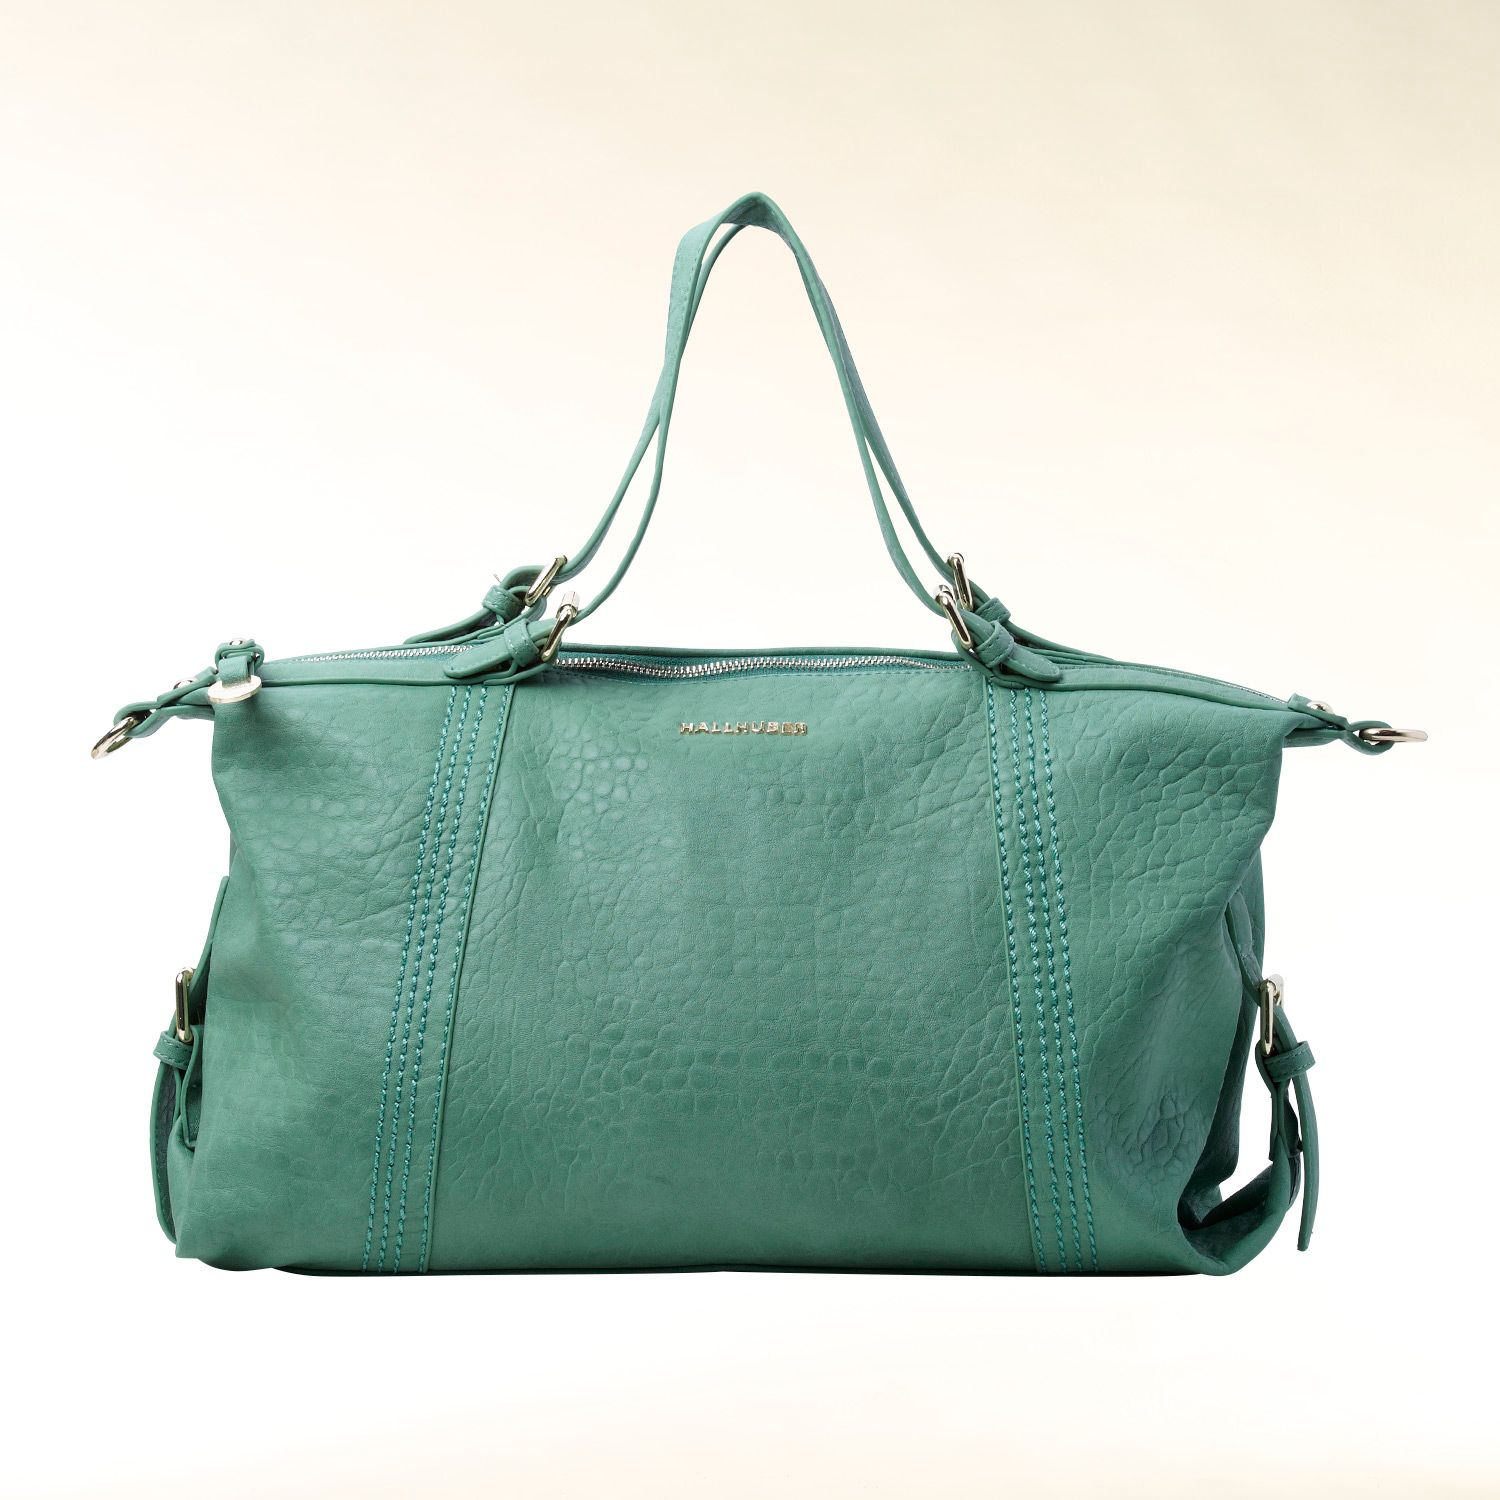 Sporty top handle bag